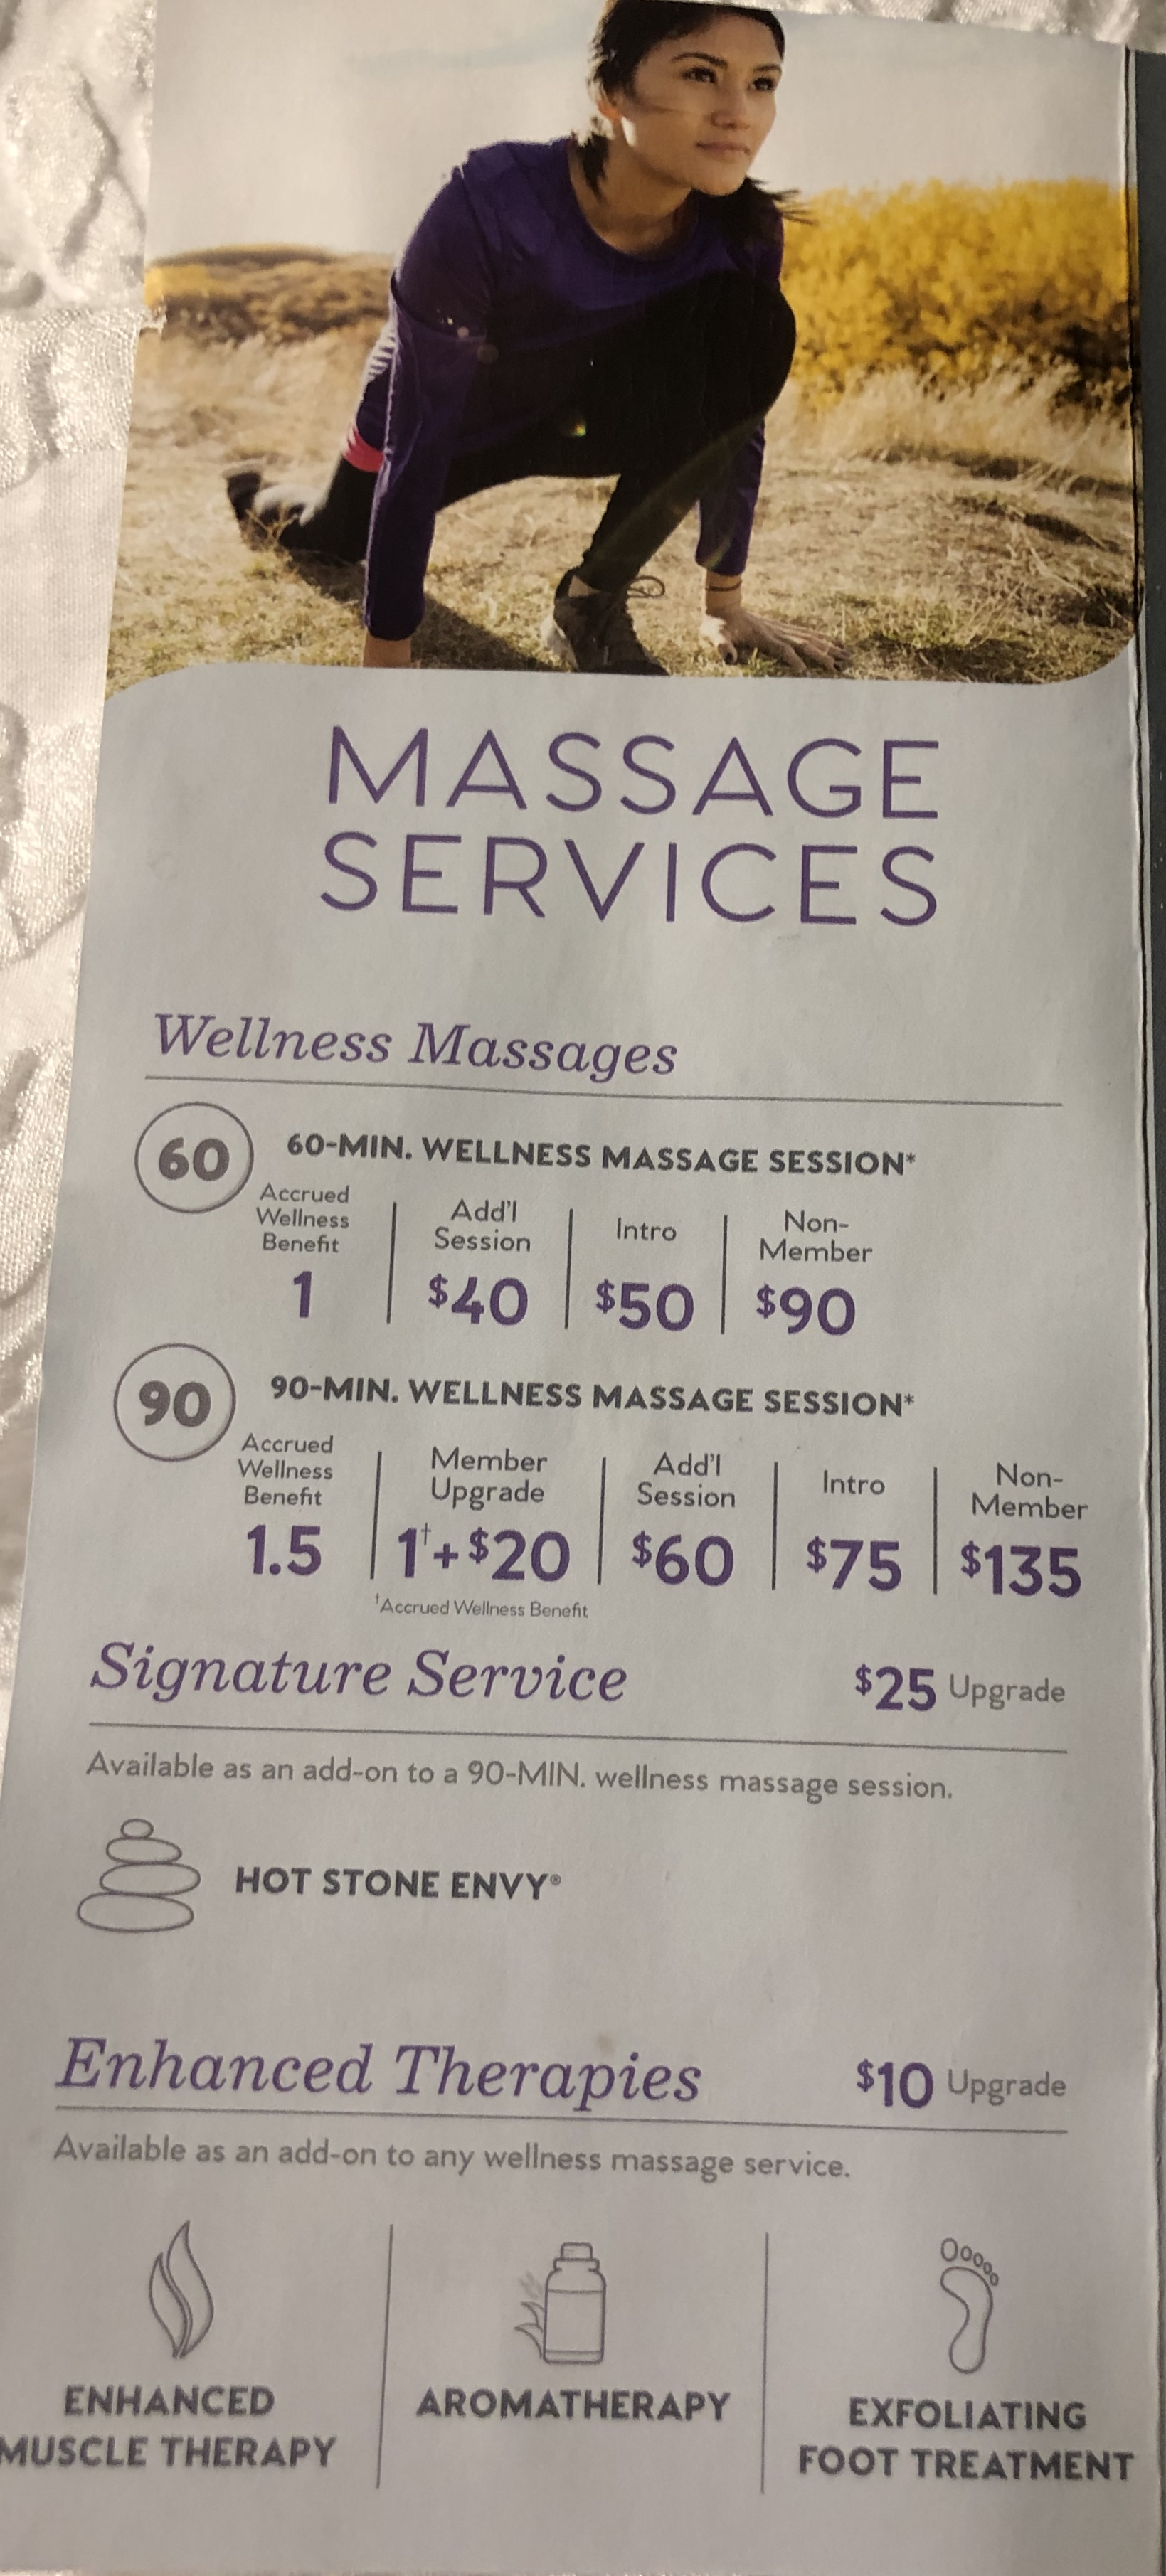 Massage Service and Add On's Available